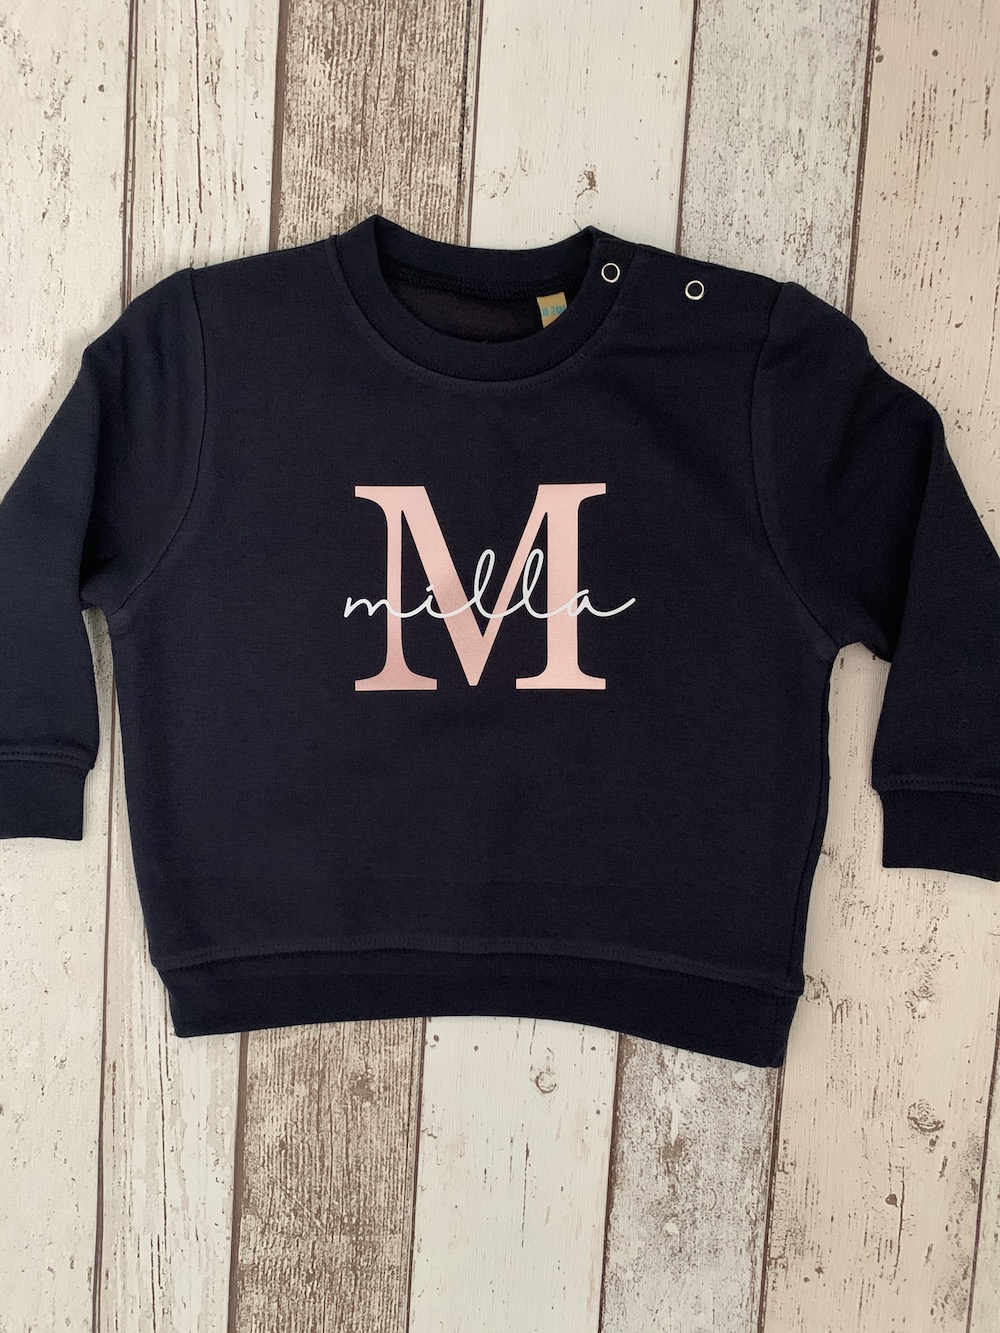 Pretty Initial Navy Sweatshirt – Toddler Size